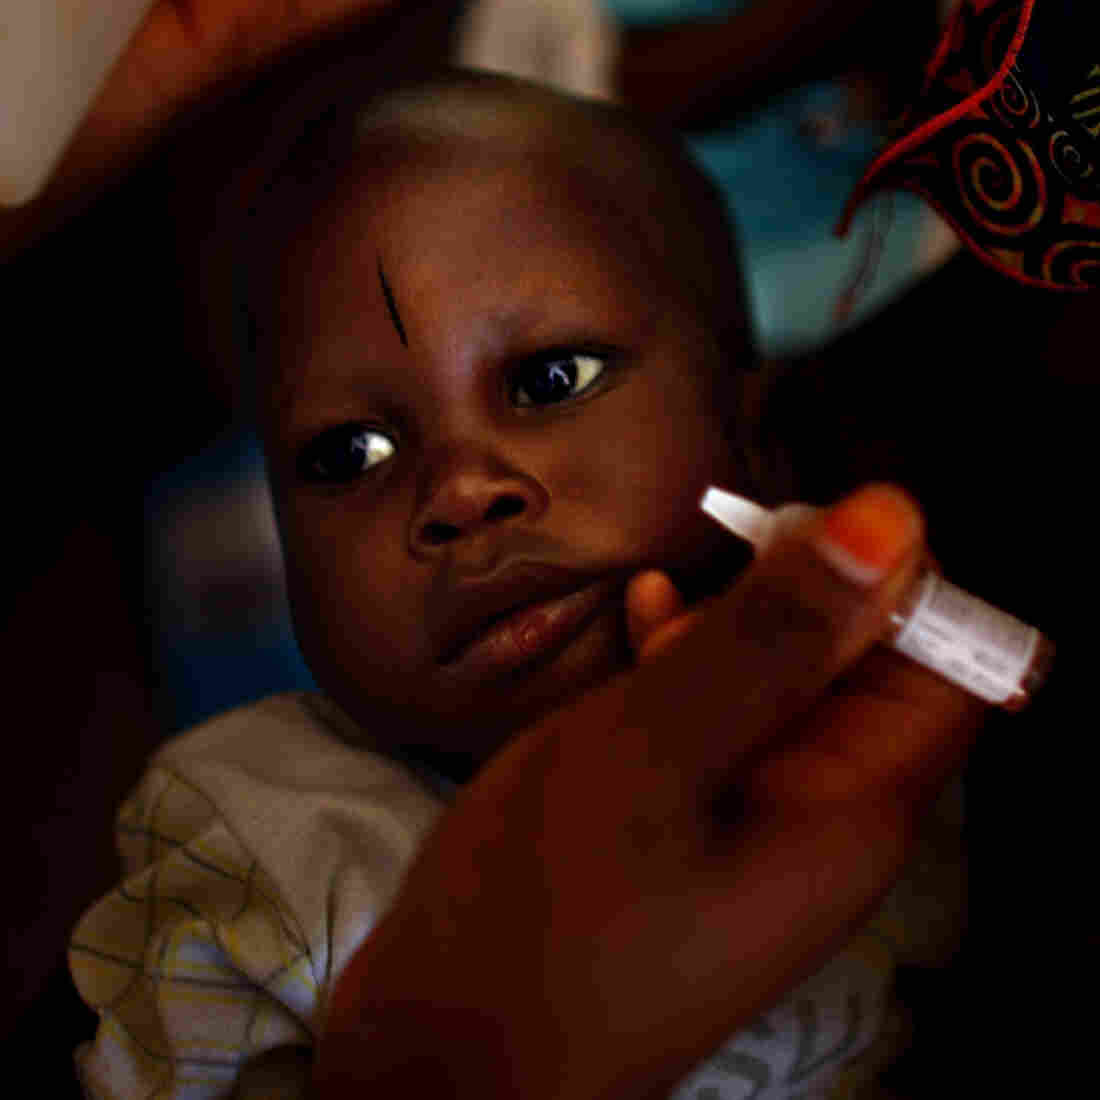 A child is immunized against polio at the health clinic in a farming village in northern Nigeria. The procedure involves pinching two drops of the vaccine into the child's mouth. For full protection, the child needs three doses, spaced out over time.